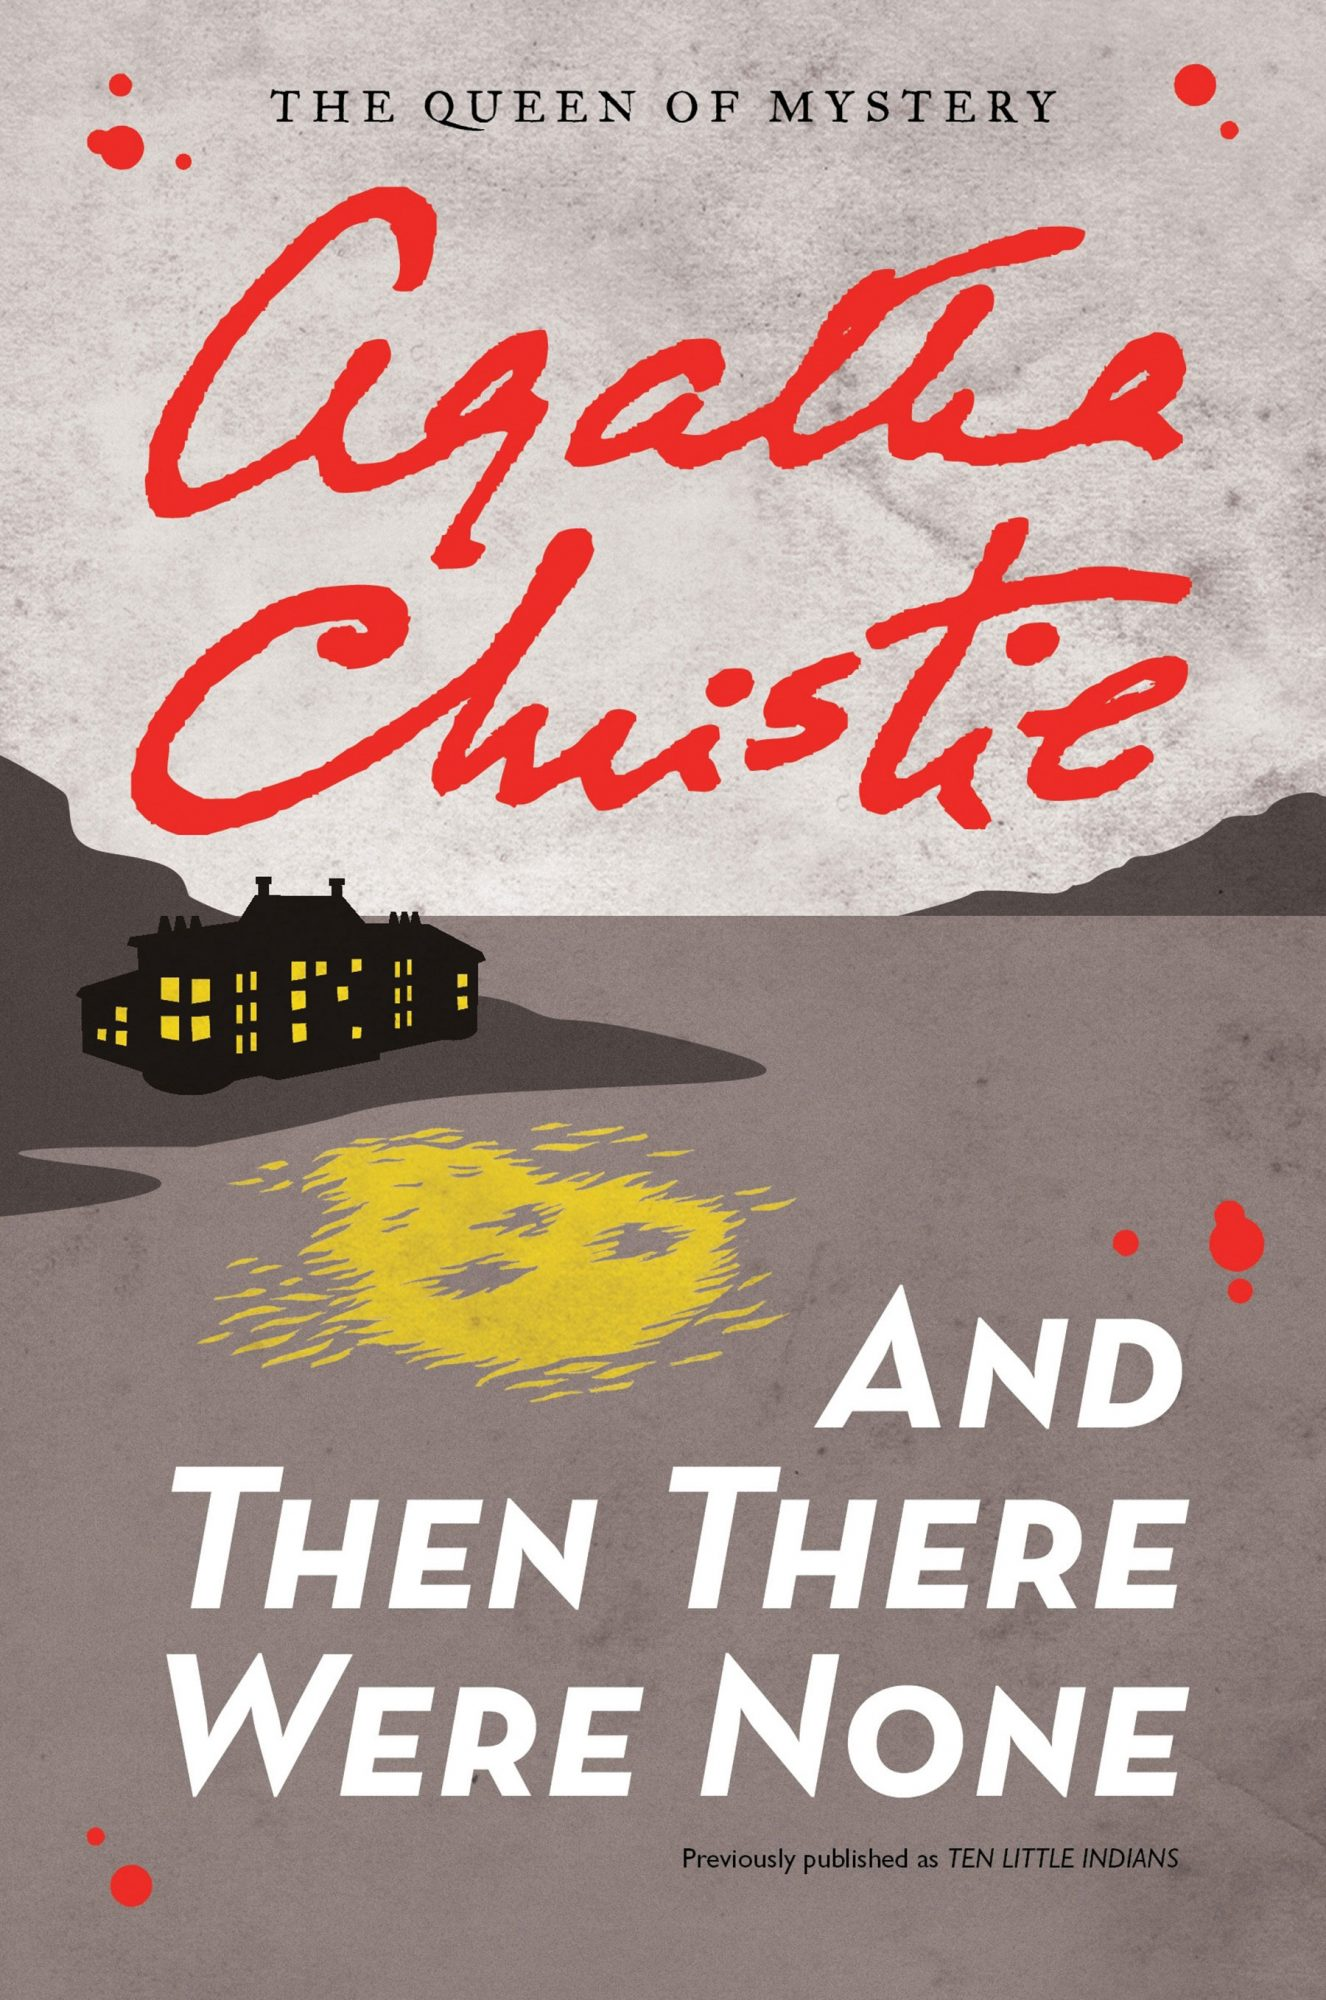 And Then There Were None - paperback (5/6/14)by Agatha Christie